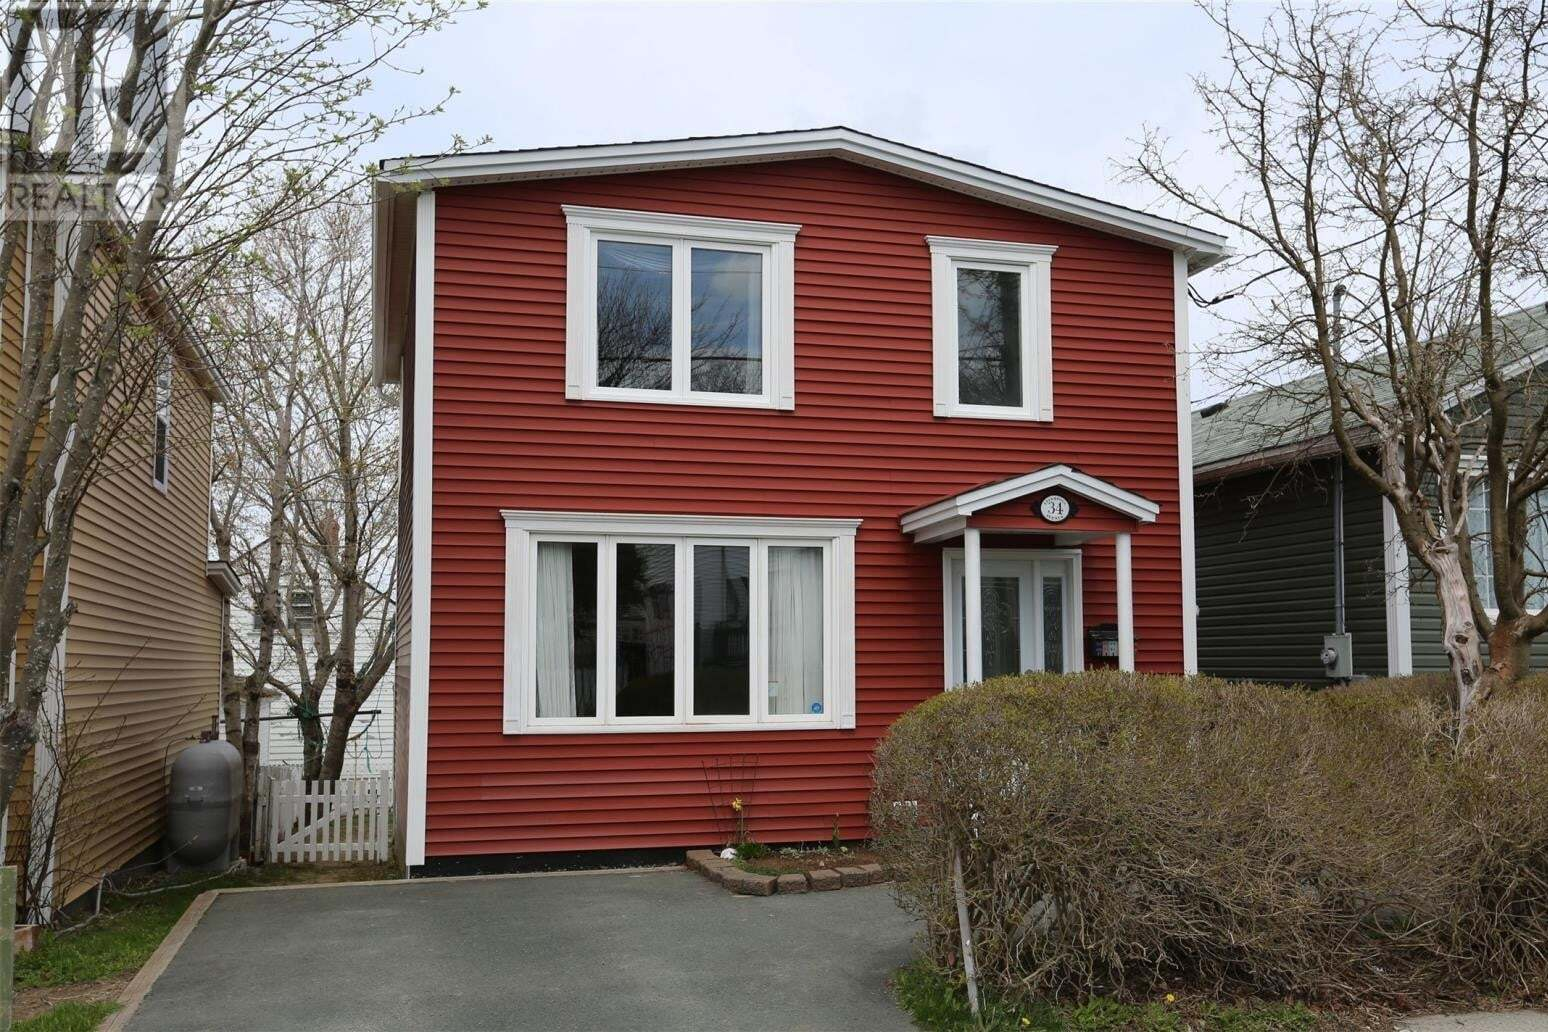 House for sale at 34 Liverpool Ave St. John's Newfoundland - MLS: 1214179